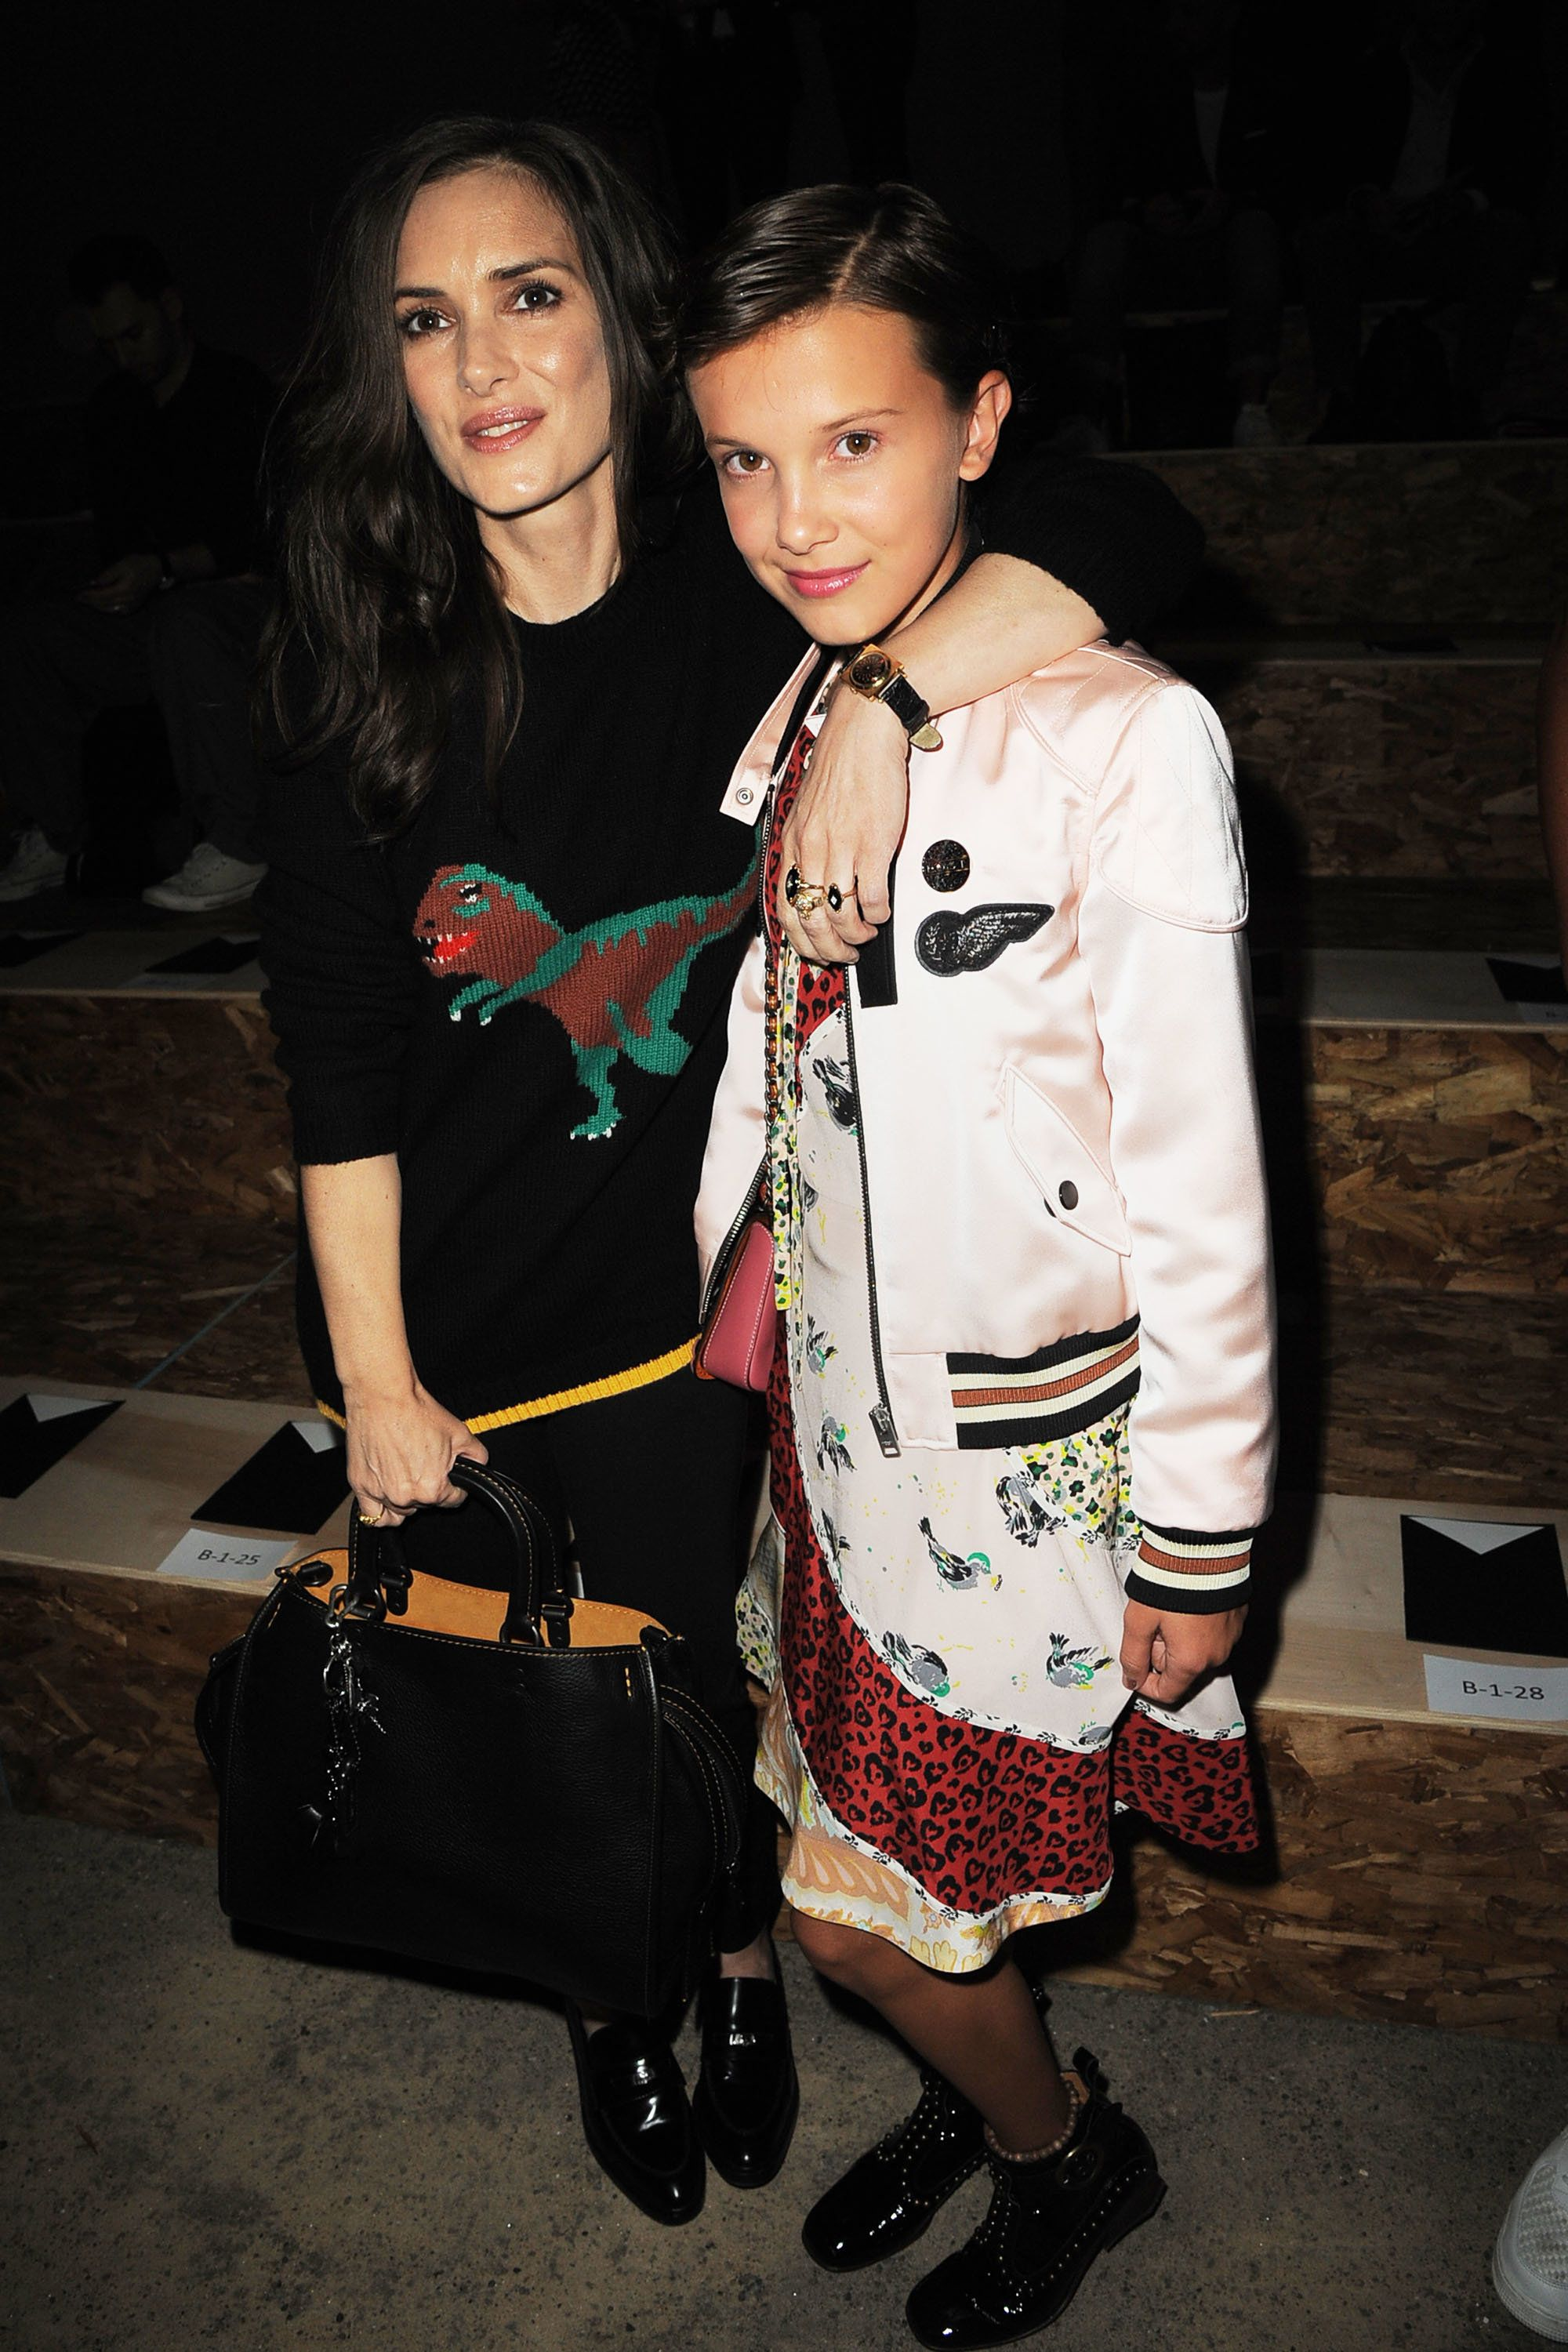 Winona Ryder and Millie Bobby Brown attend the Coach 1941 Women's Spring 2017 Show at Pier 76 on Sept. 13 in New York City.